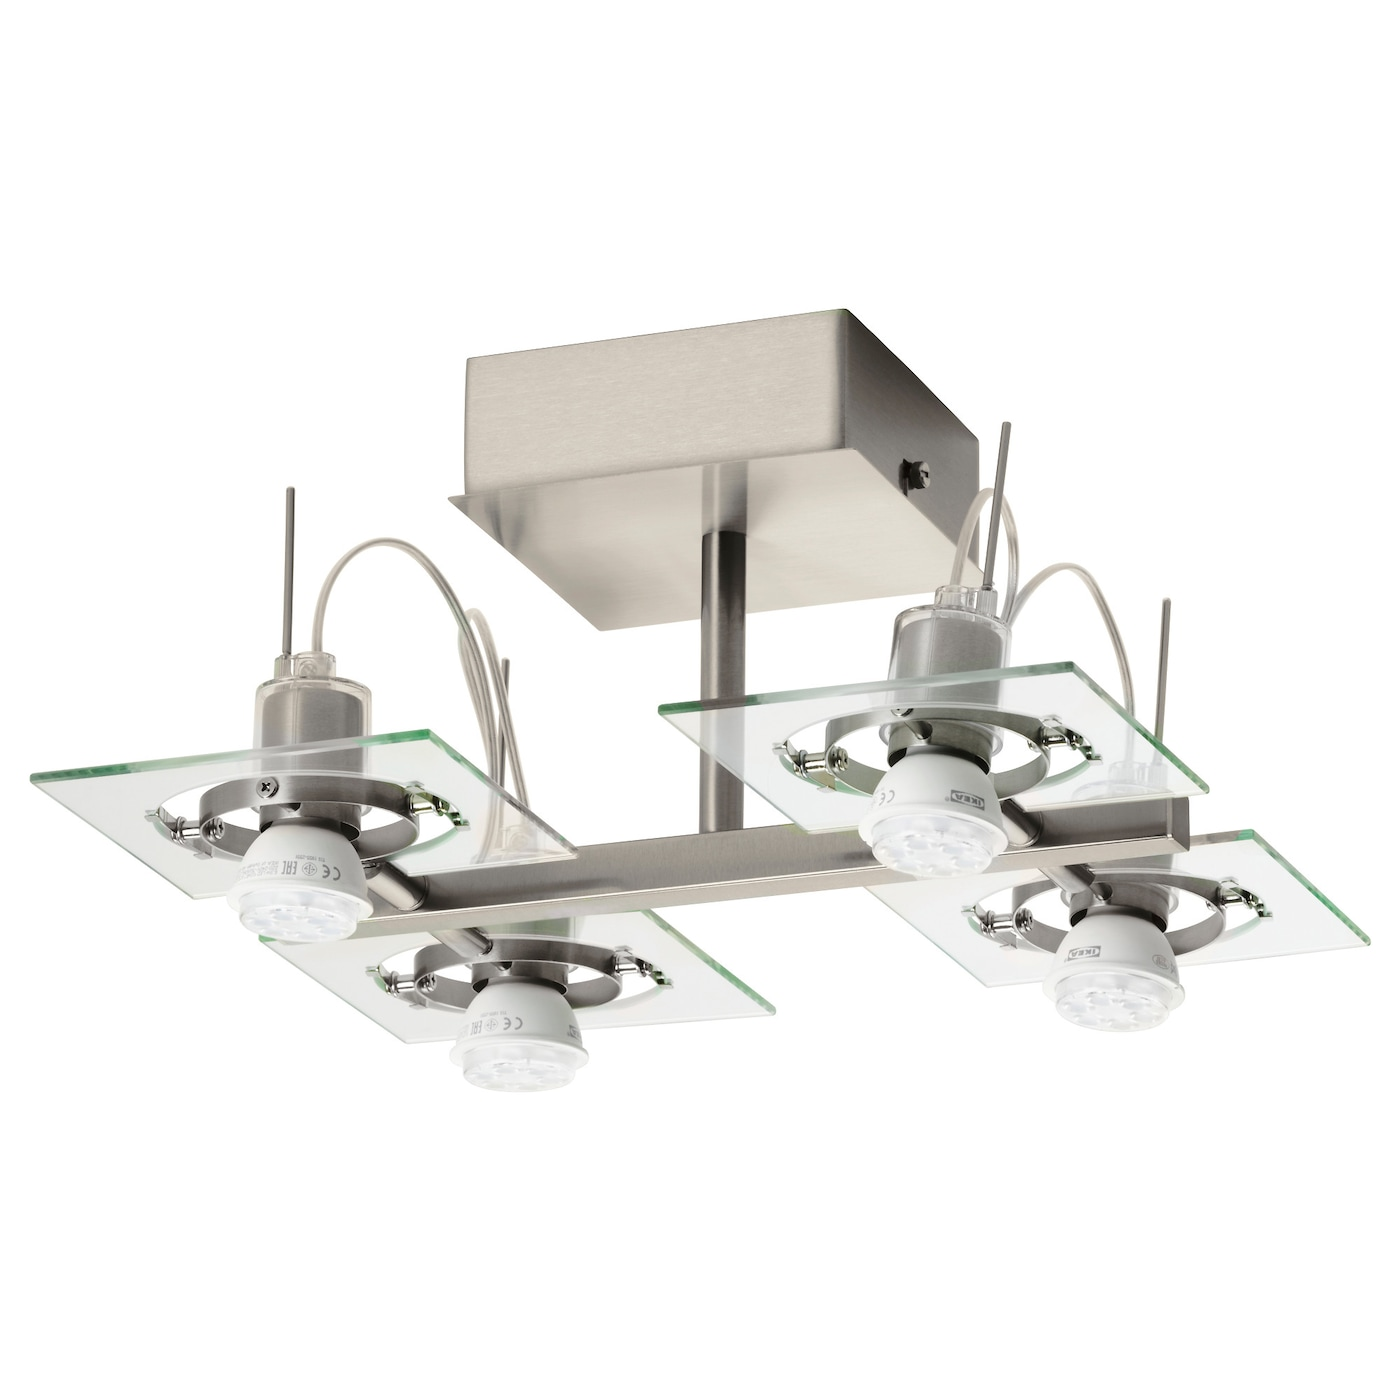 IKEA FUGA ceiling spotlight with 4 spots Adjustable spotlights.